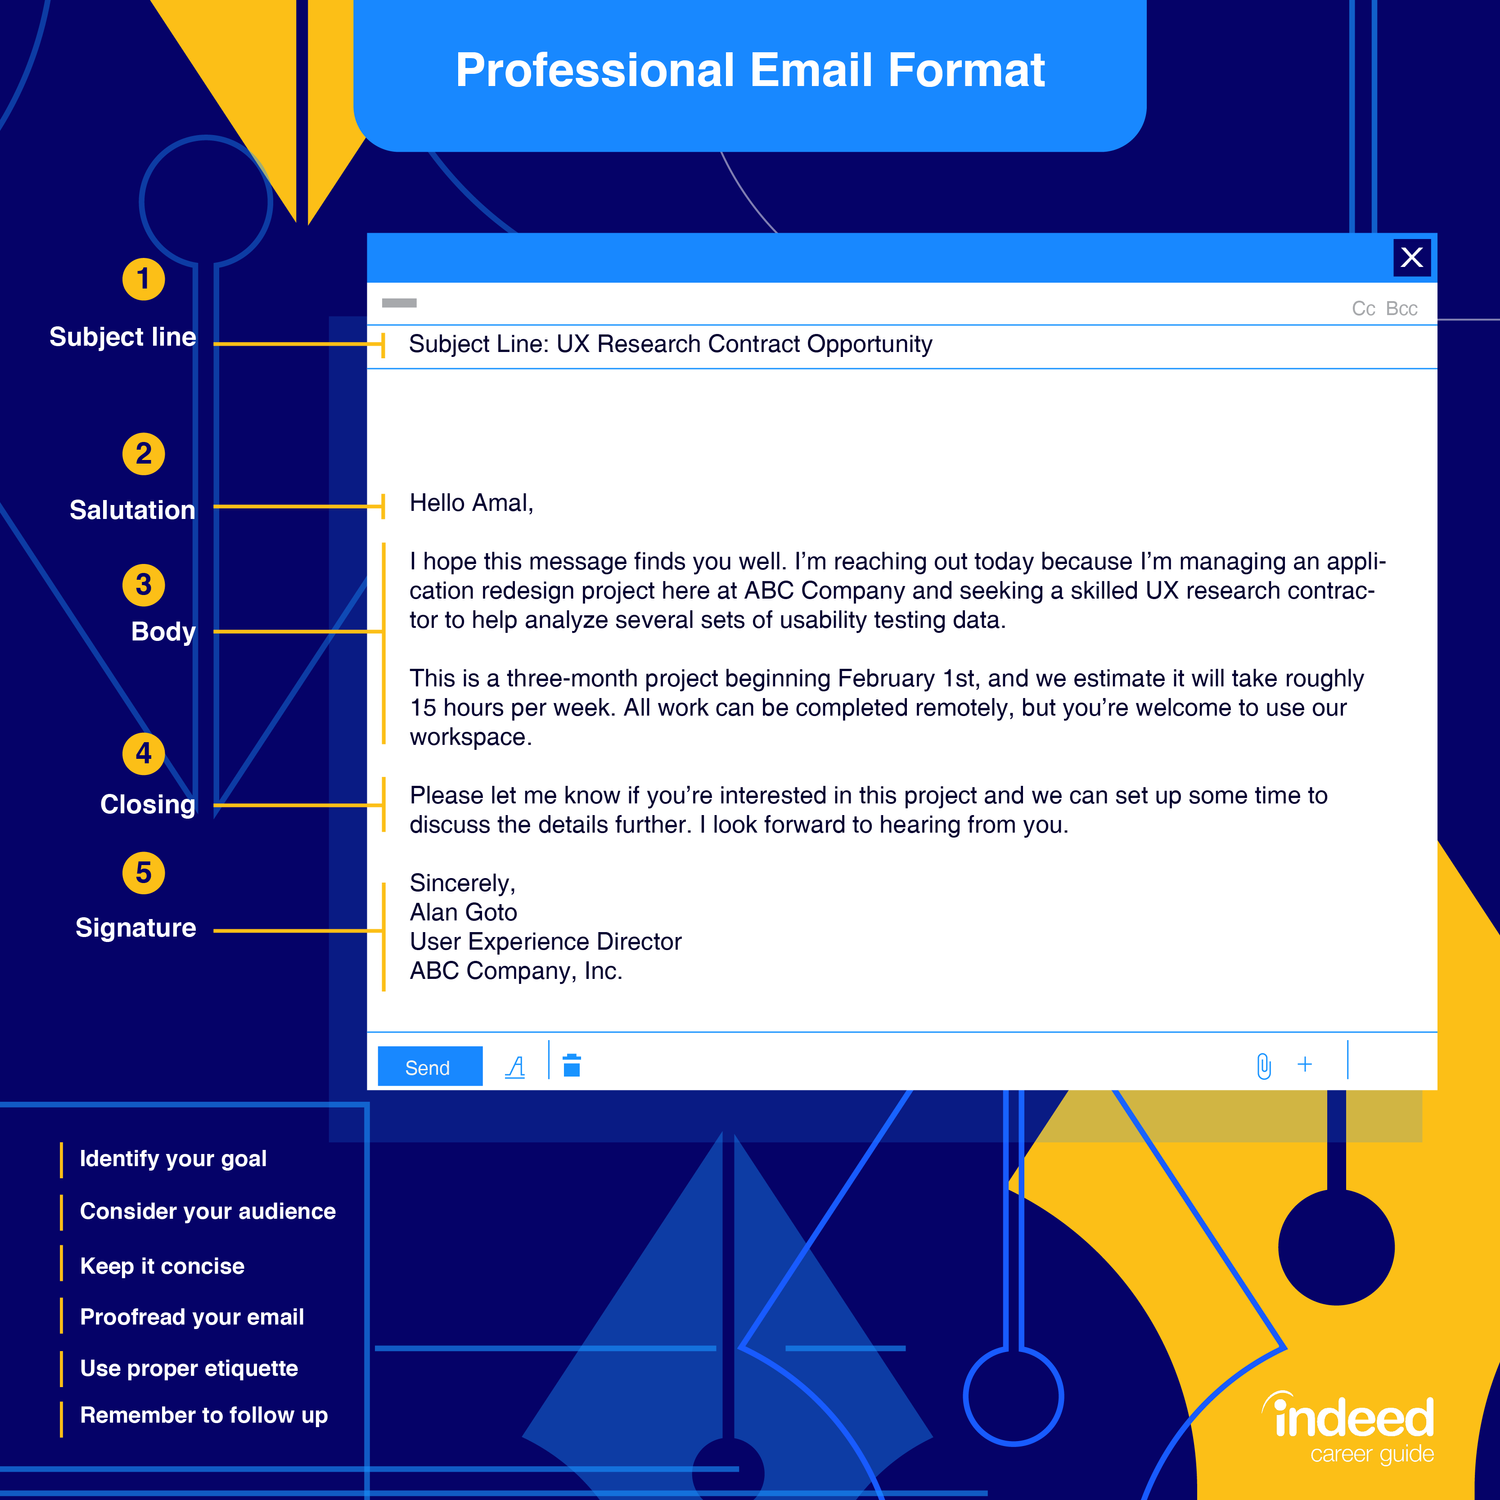 How To Write a Professional Email   Indeed.com